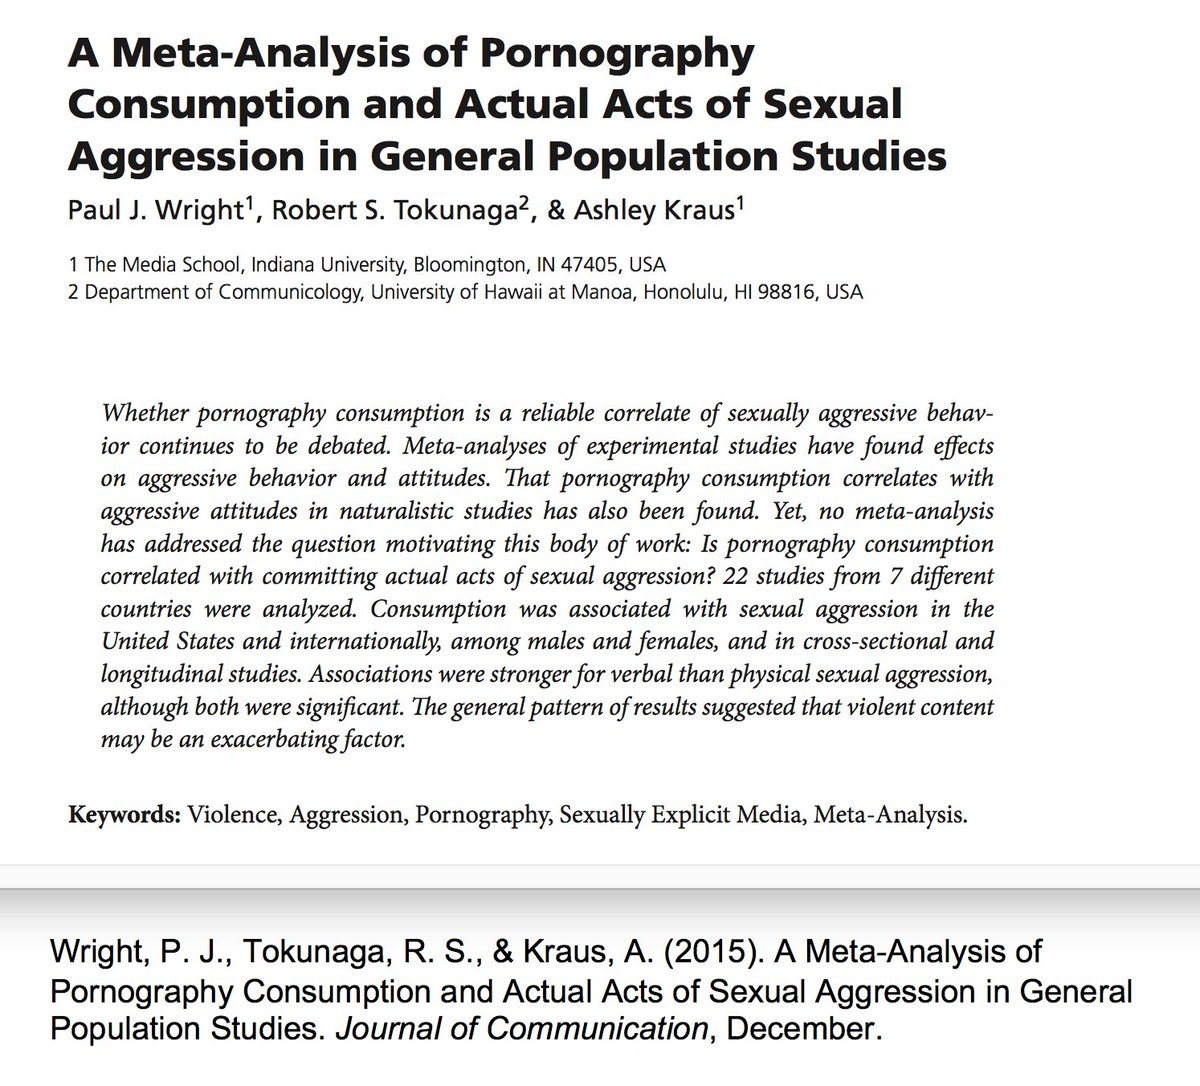 an analysis of the sale and consumption of pornography This paper draws on ethnographic research conducted in amsterdam, exploring the ways in which women tourists engage with public sex performances, drawing comparisons.